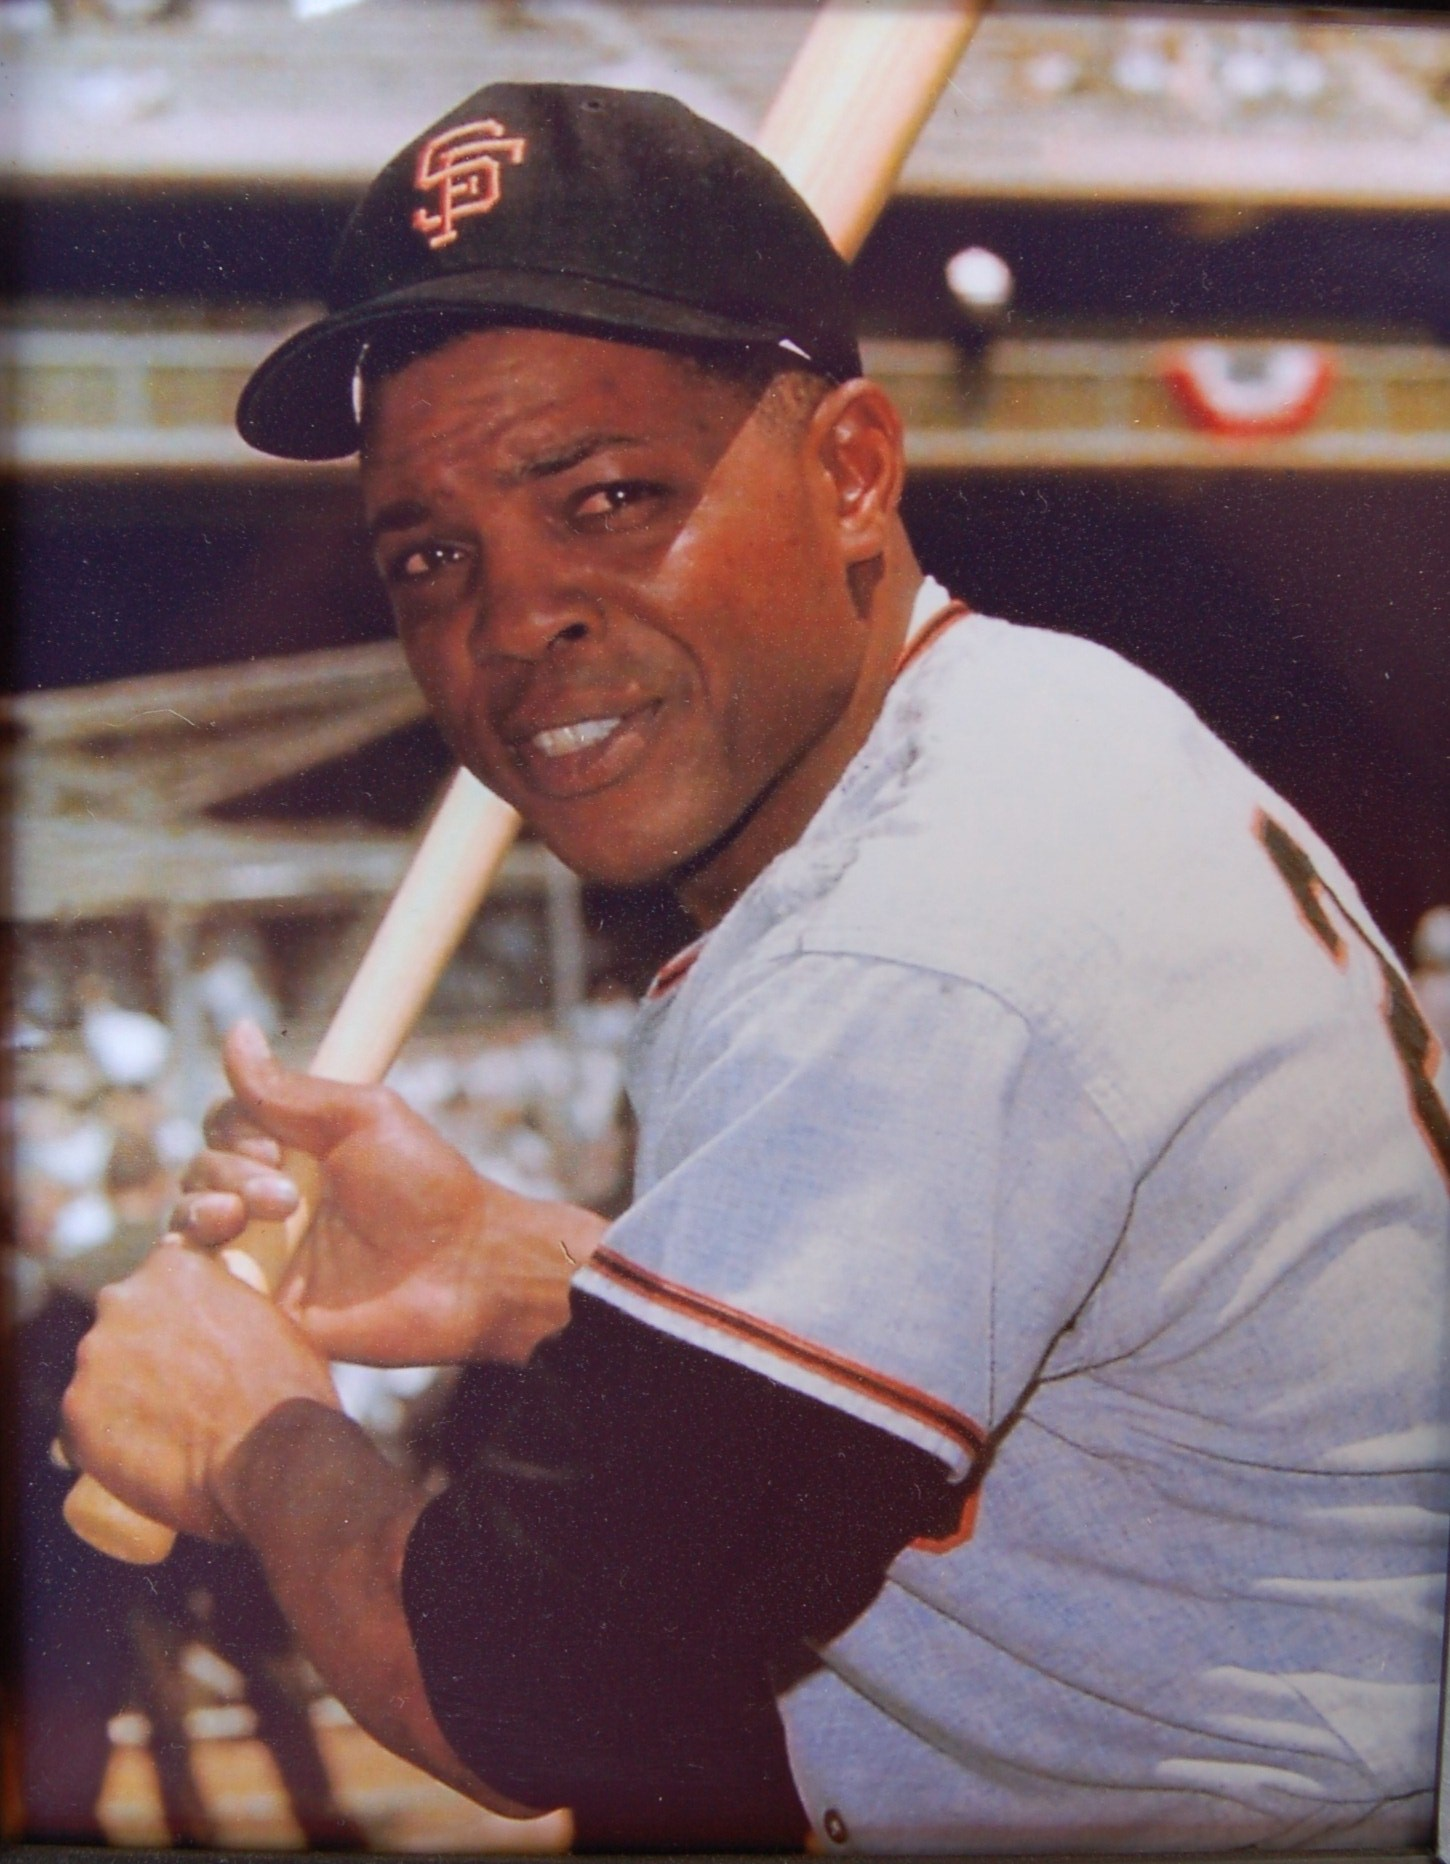 Named MVP of the 1968 All-Star Game after scoring the game's only run.